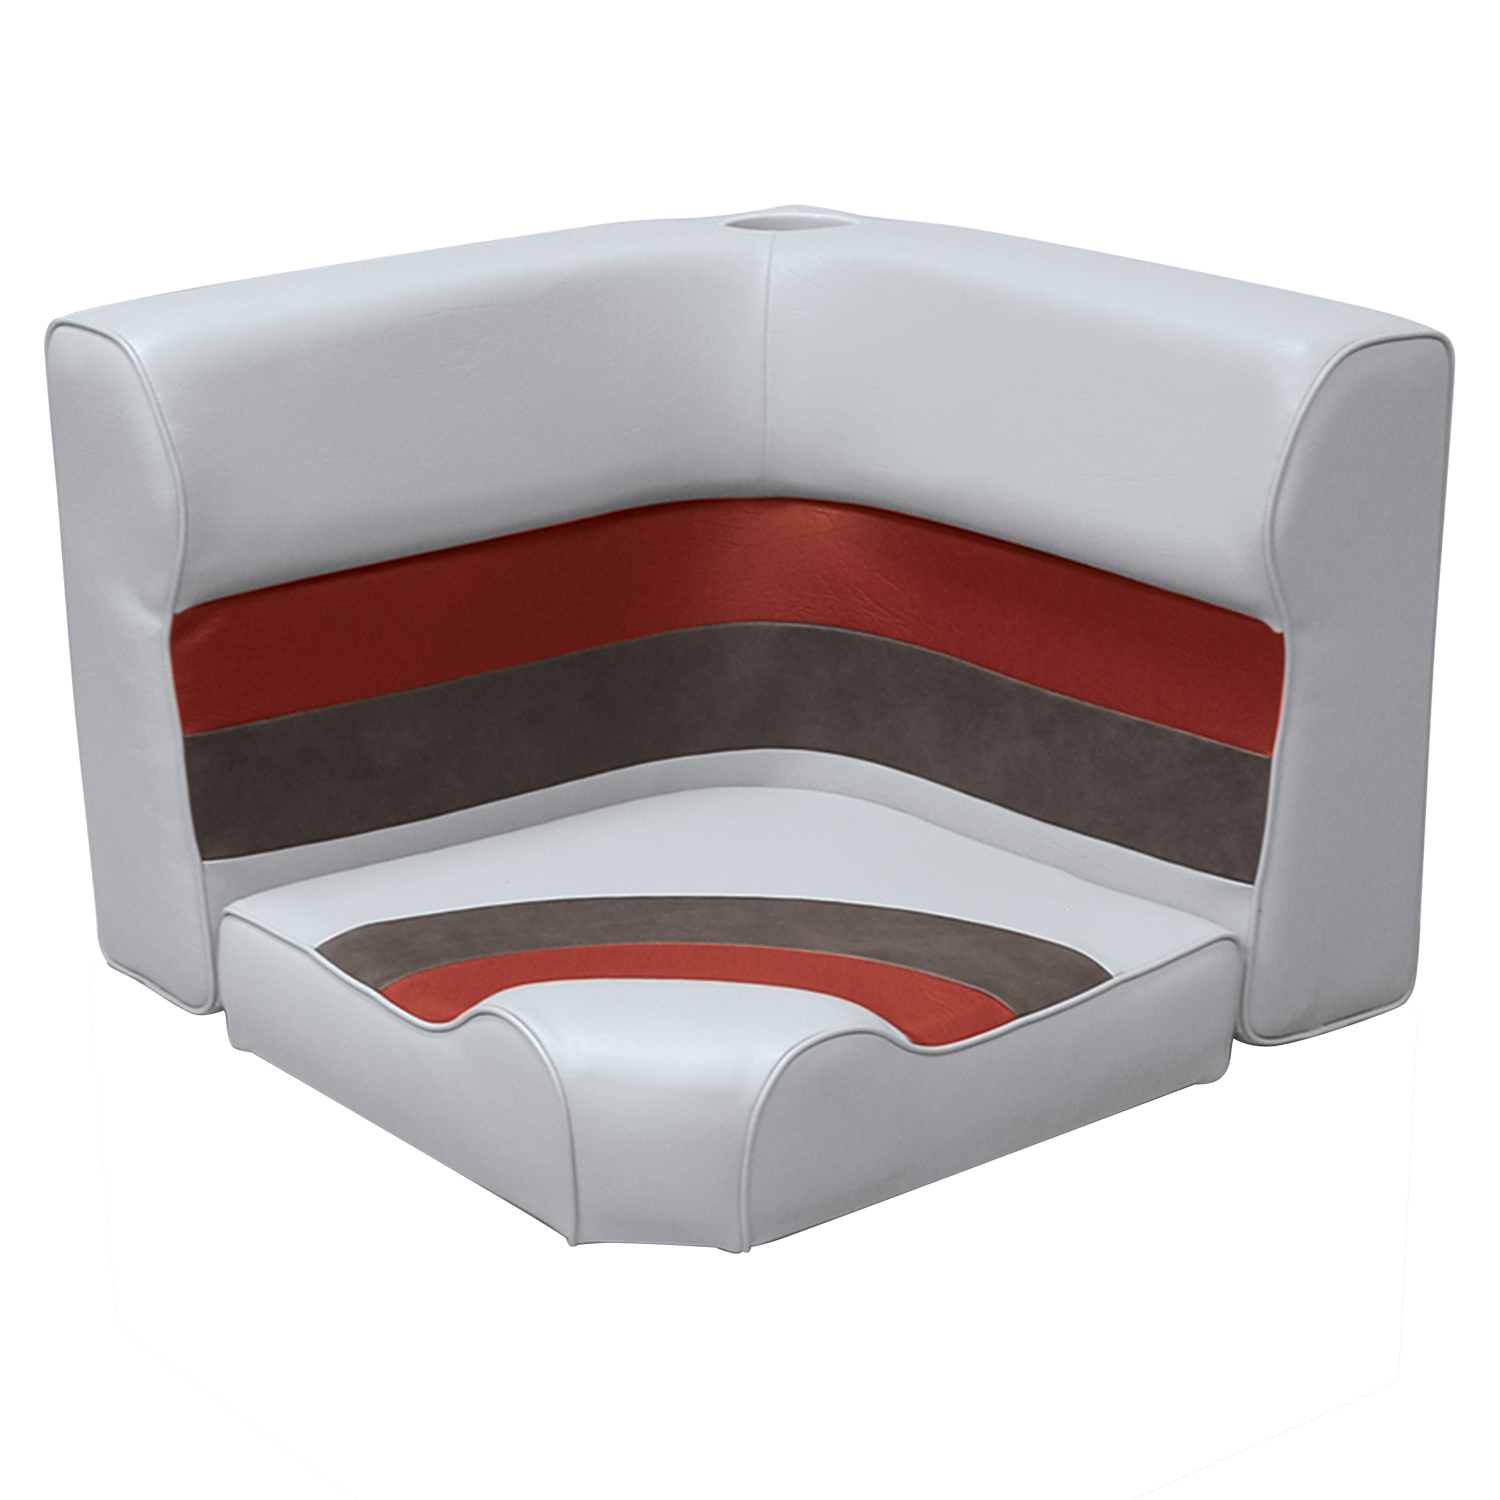 Wise 8WD133-1012 Deluxe Series Pontoon Radius Corner Lounge Seat and Backrest Cushion Set Only, Color: Grey/Red/Charcoal